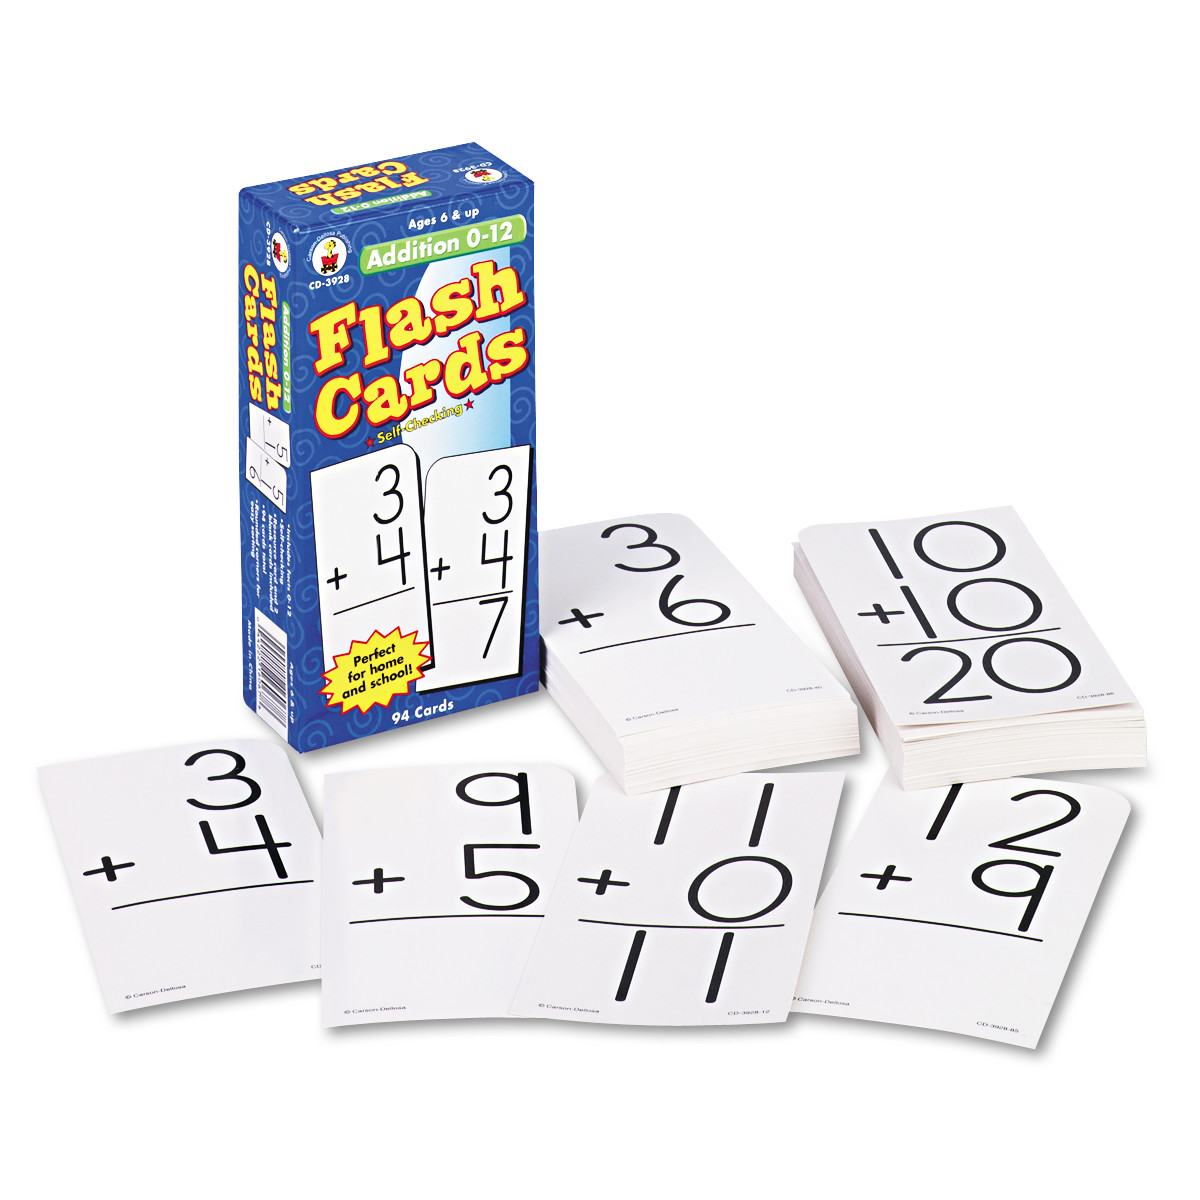 Carson-Dellosa Publishing Flash Cards, Addition Facts 0-12, 3w x 6h, 94/Pack